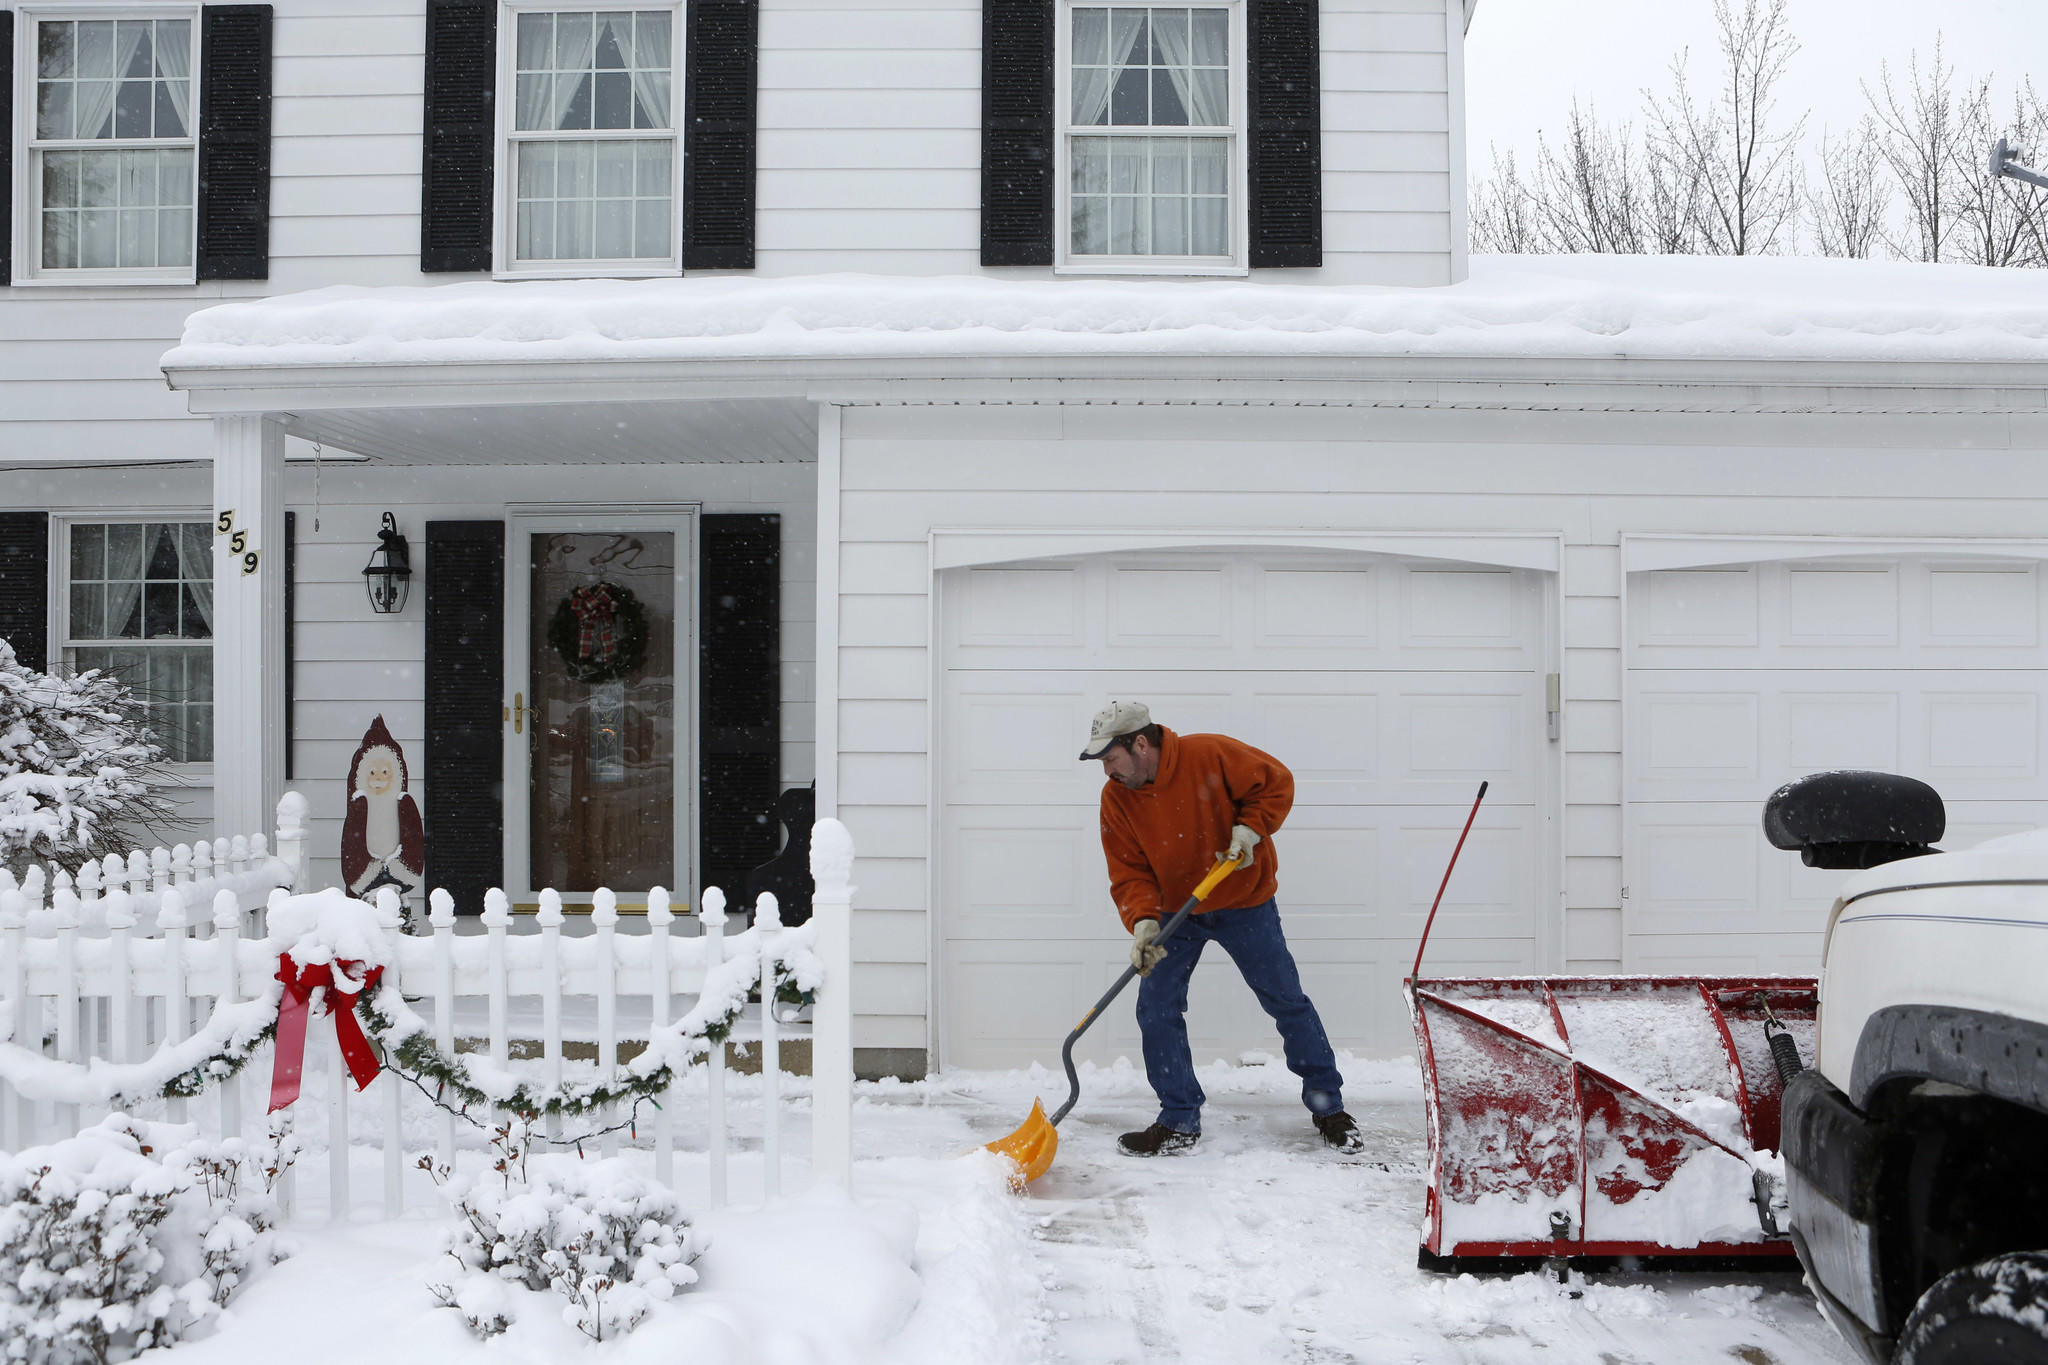 After shoveling a client's driveway, Chris Wade shovels the walkway. Wade worked at Delphi Automotive Systems for 13 1/2 years before taking a buyout in 2006 as part of the company's ongoing shift of production out of the U.S.